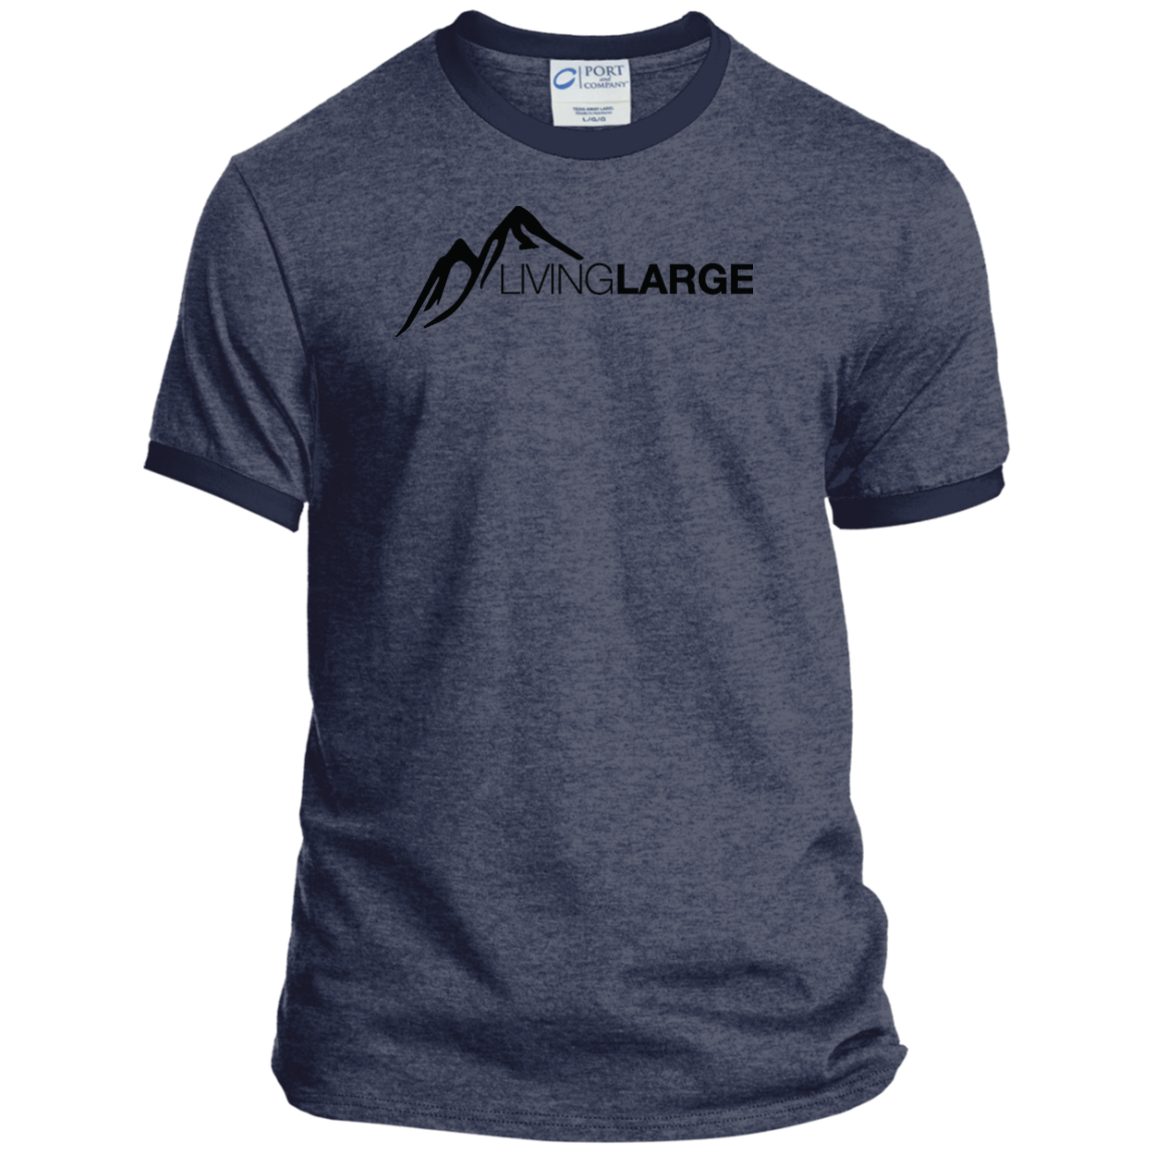 Living Large - The Mindful Marcus Peak Ringer Tee